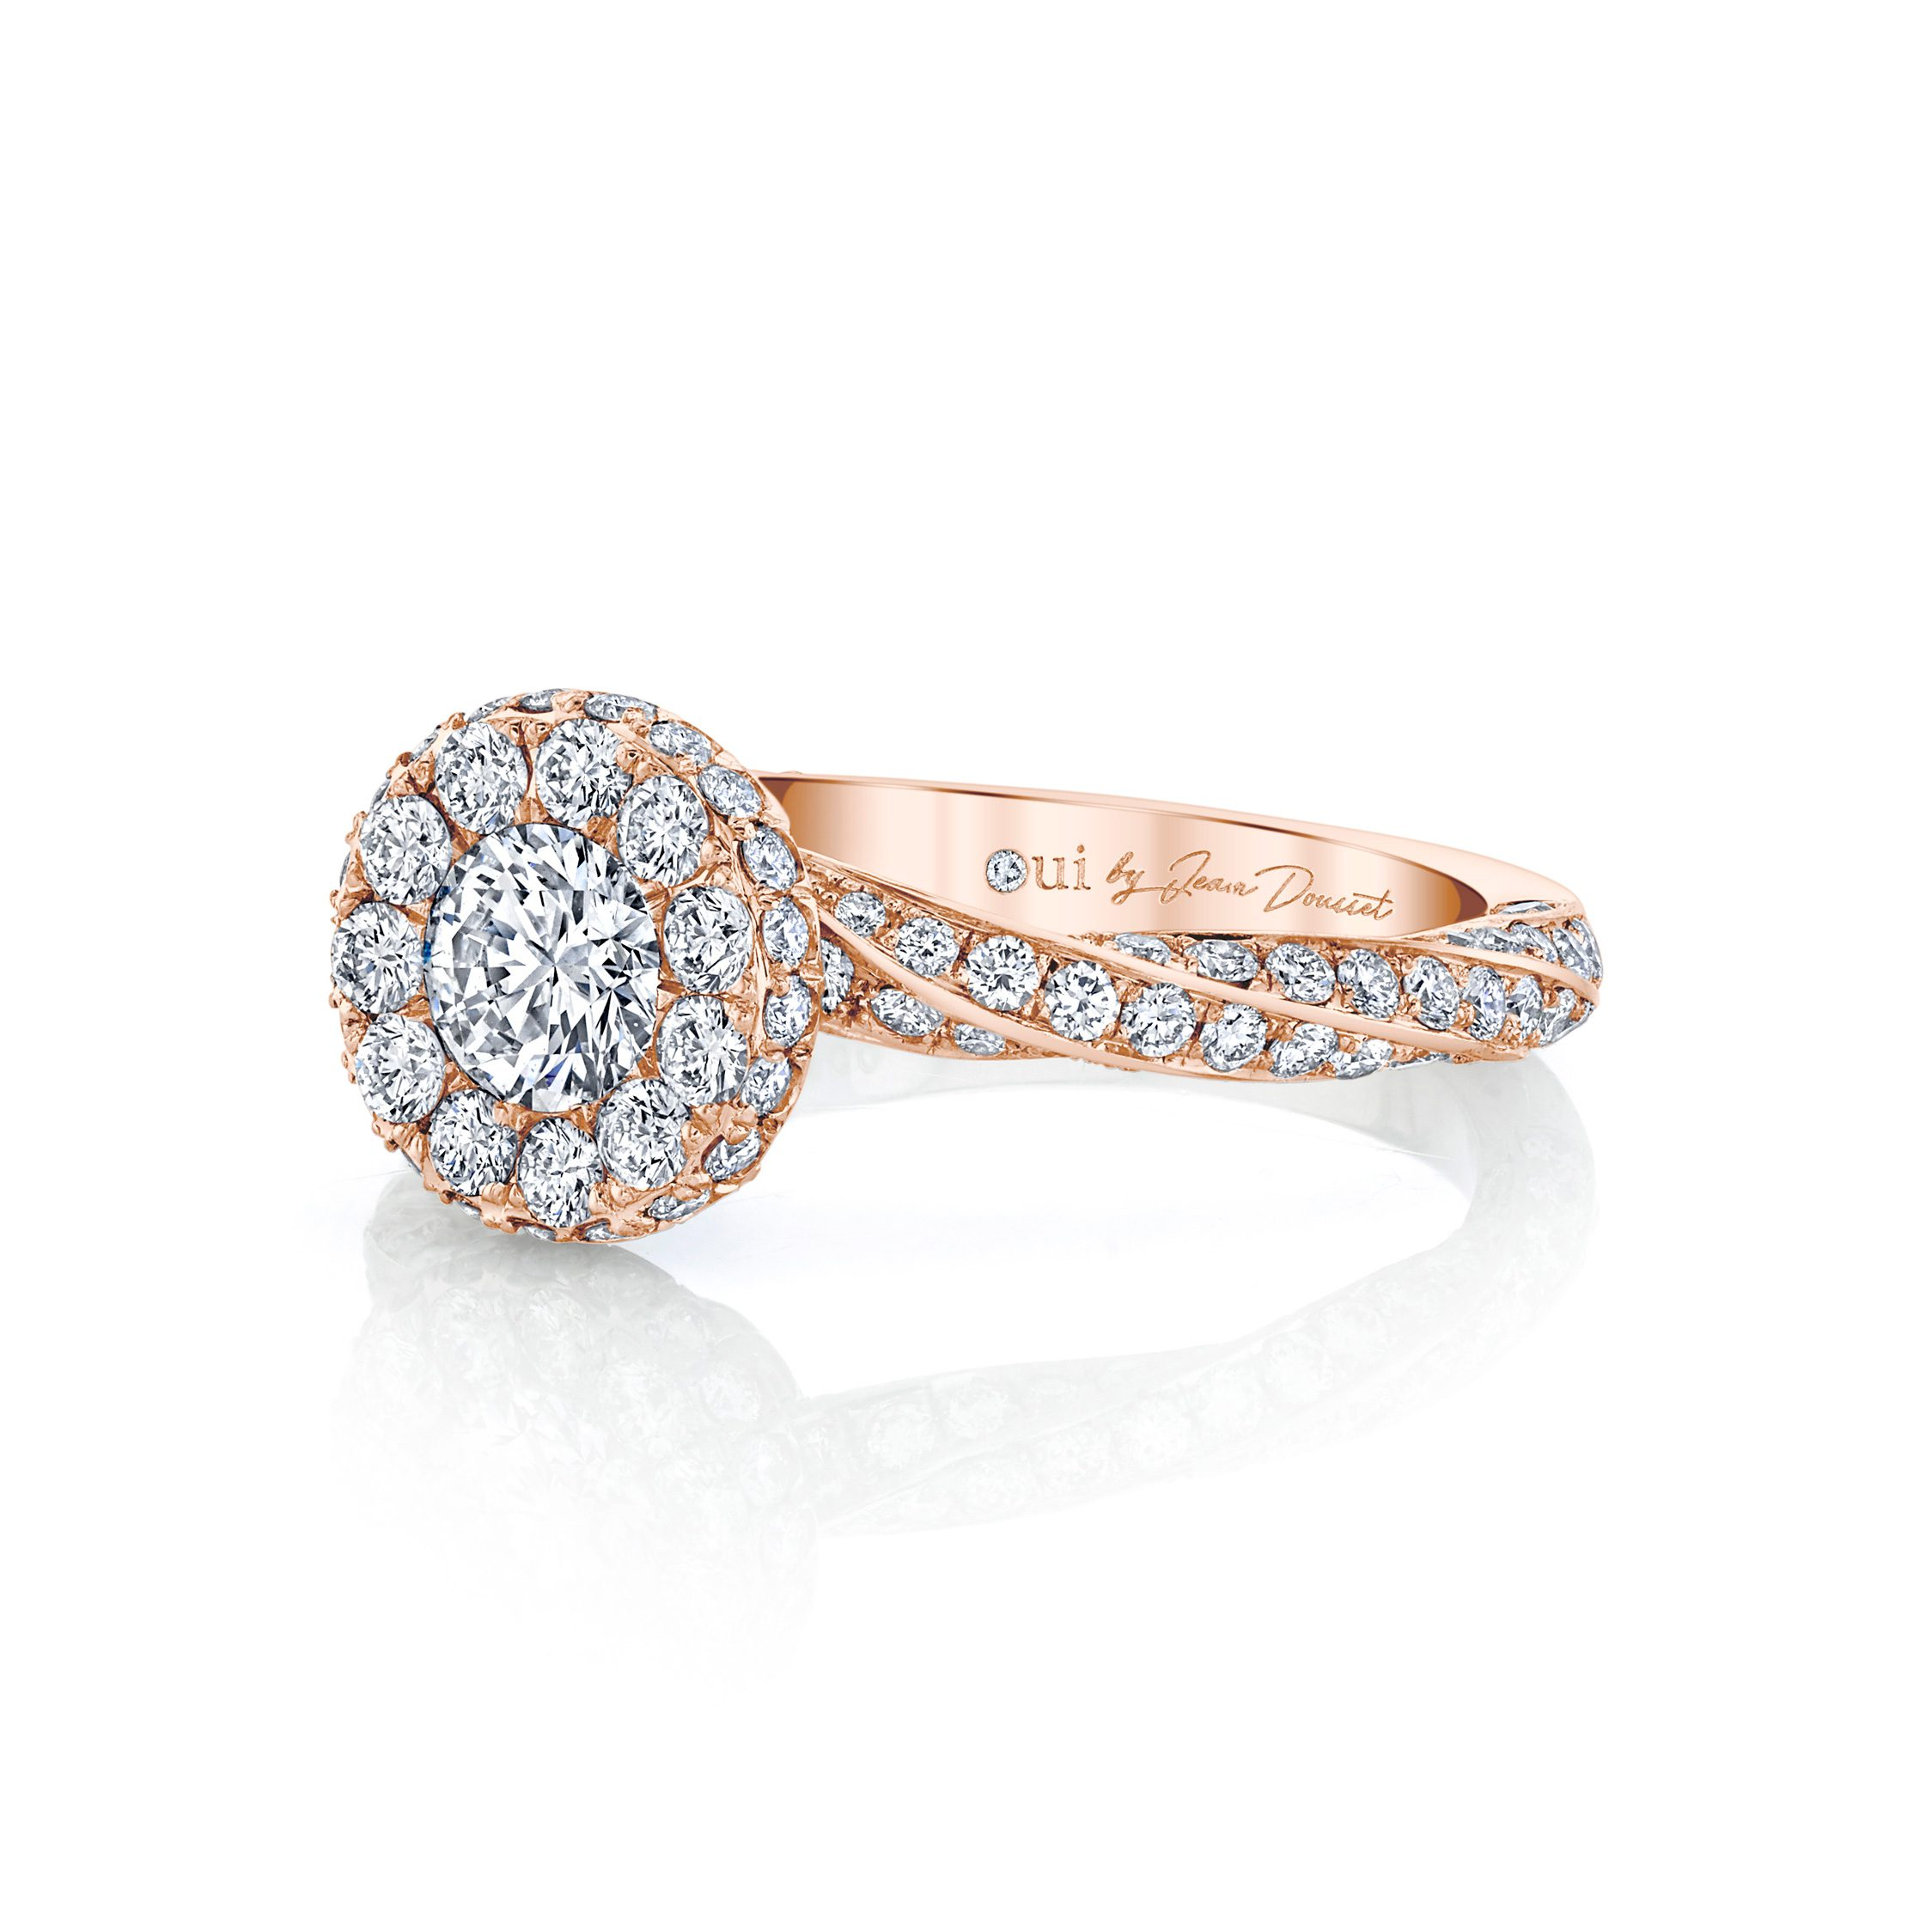 Camille Round Brilliant Seamless Halo® Engagement Ring with diamond pavé in 18k Rose Gold Side View by Oui by Jean Dousset